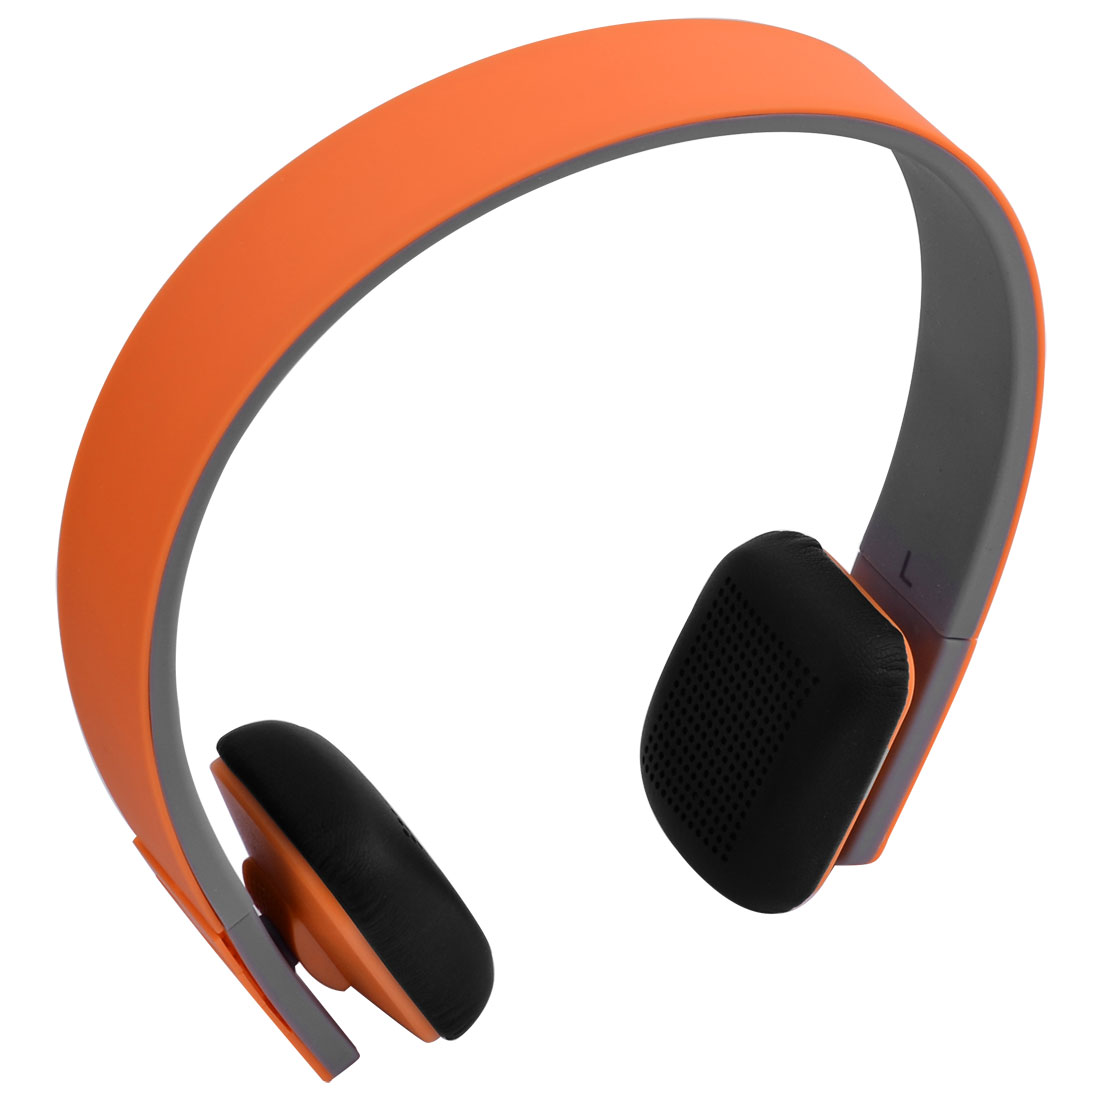 Tablet PC Noise Reduction Wireless bluetooth Stereo Headphones Headset Orange w USB Cable